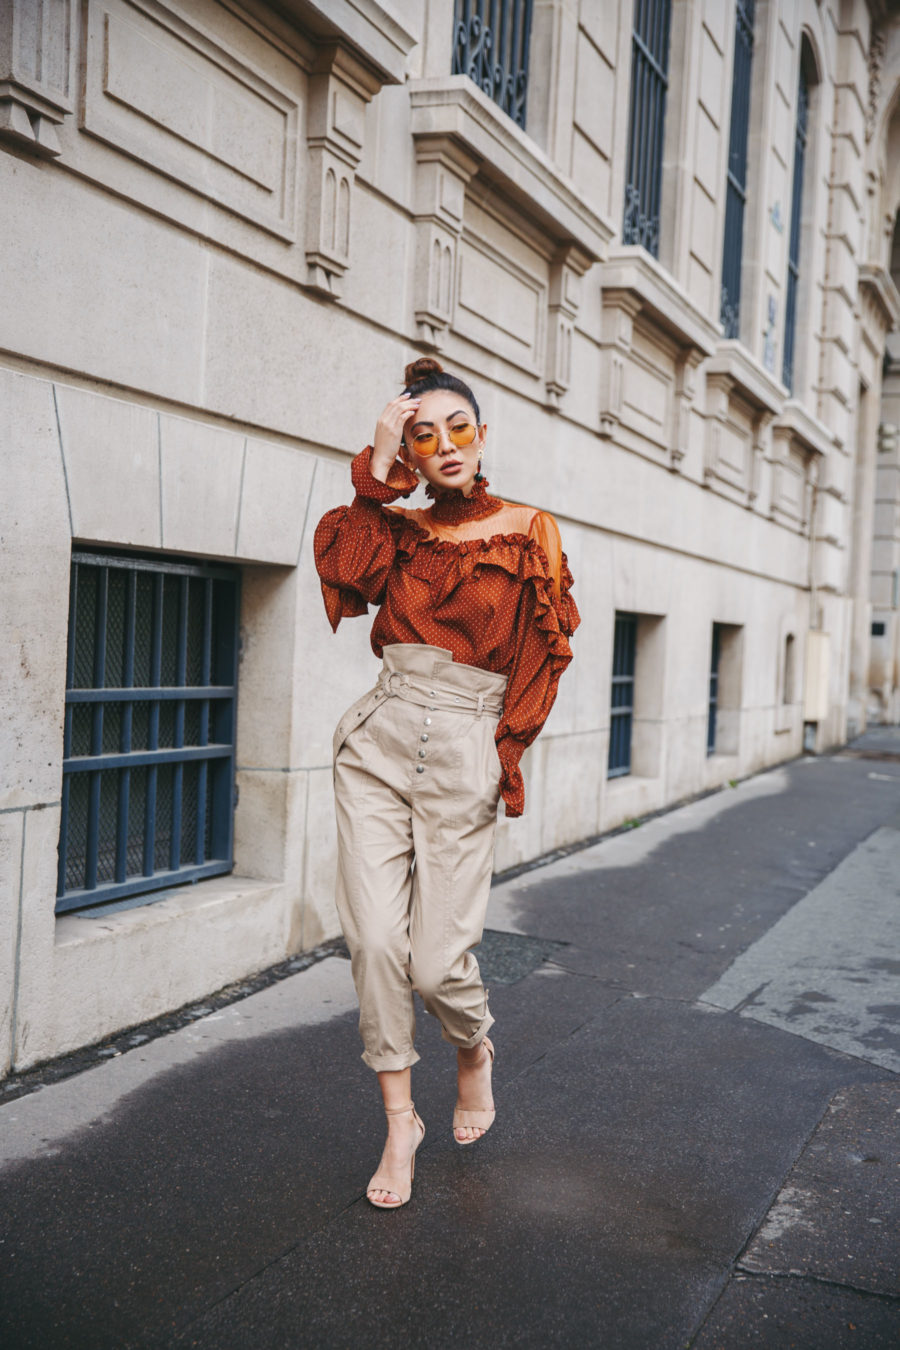 Spring 2019 capsule wardrobe - polka dot pants, high waisted trousers, ankle strap sandals // Notjessfashion.com